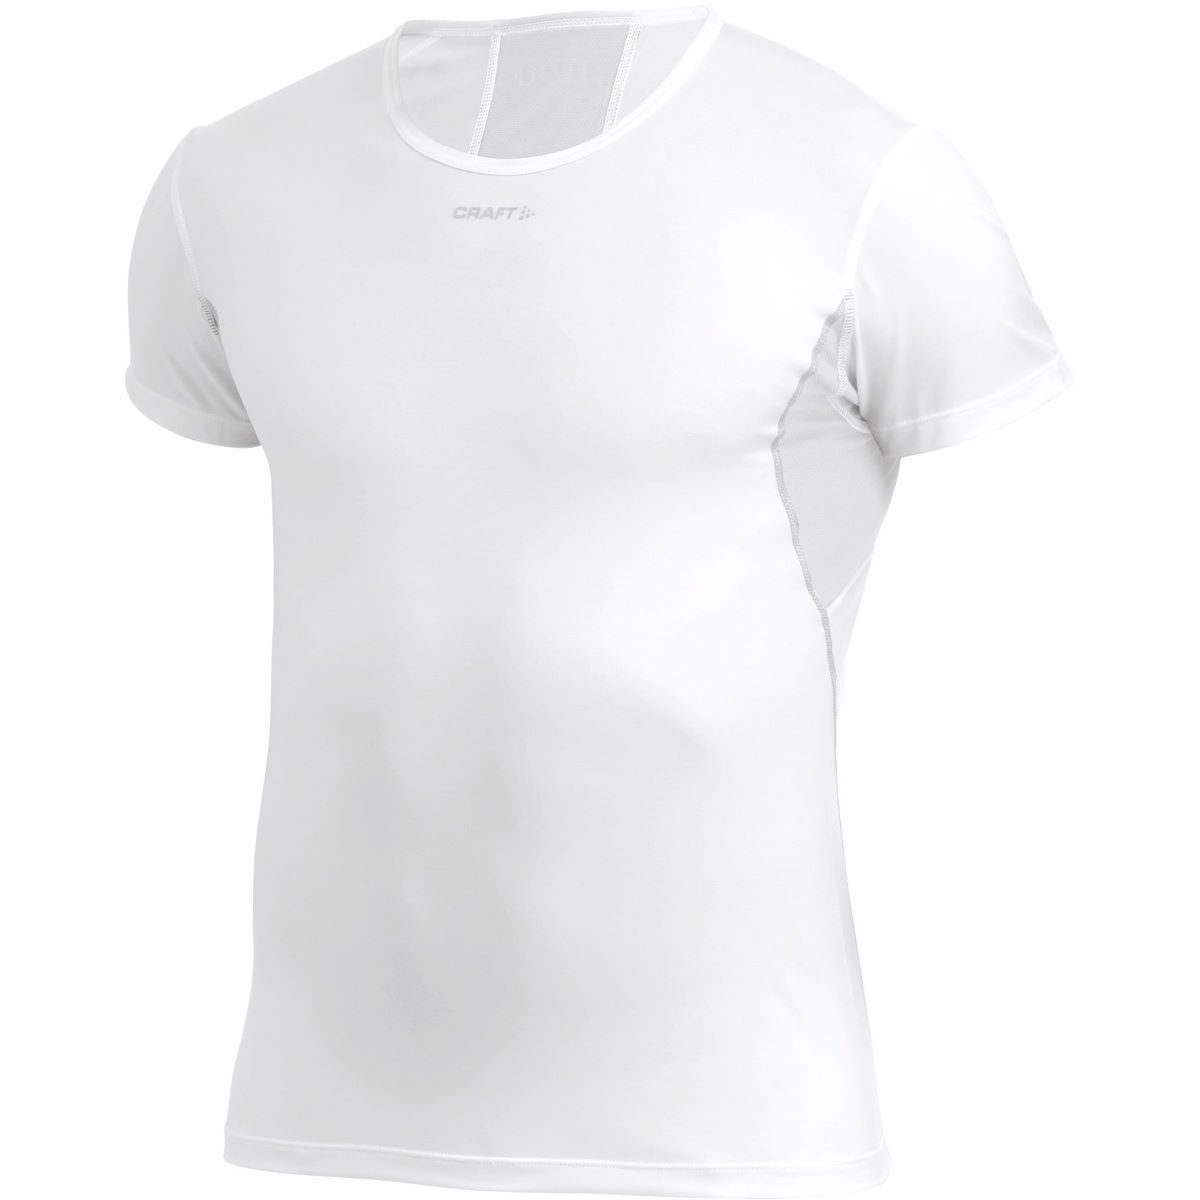 Craft Cool Tee Short Sleeve Base Layer with Mesh